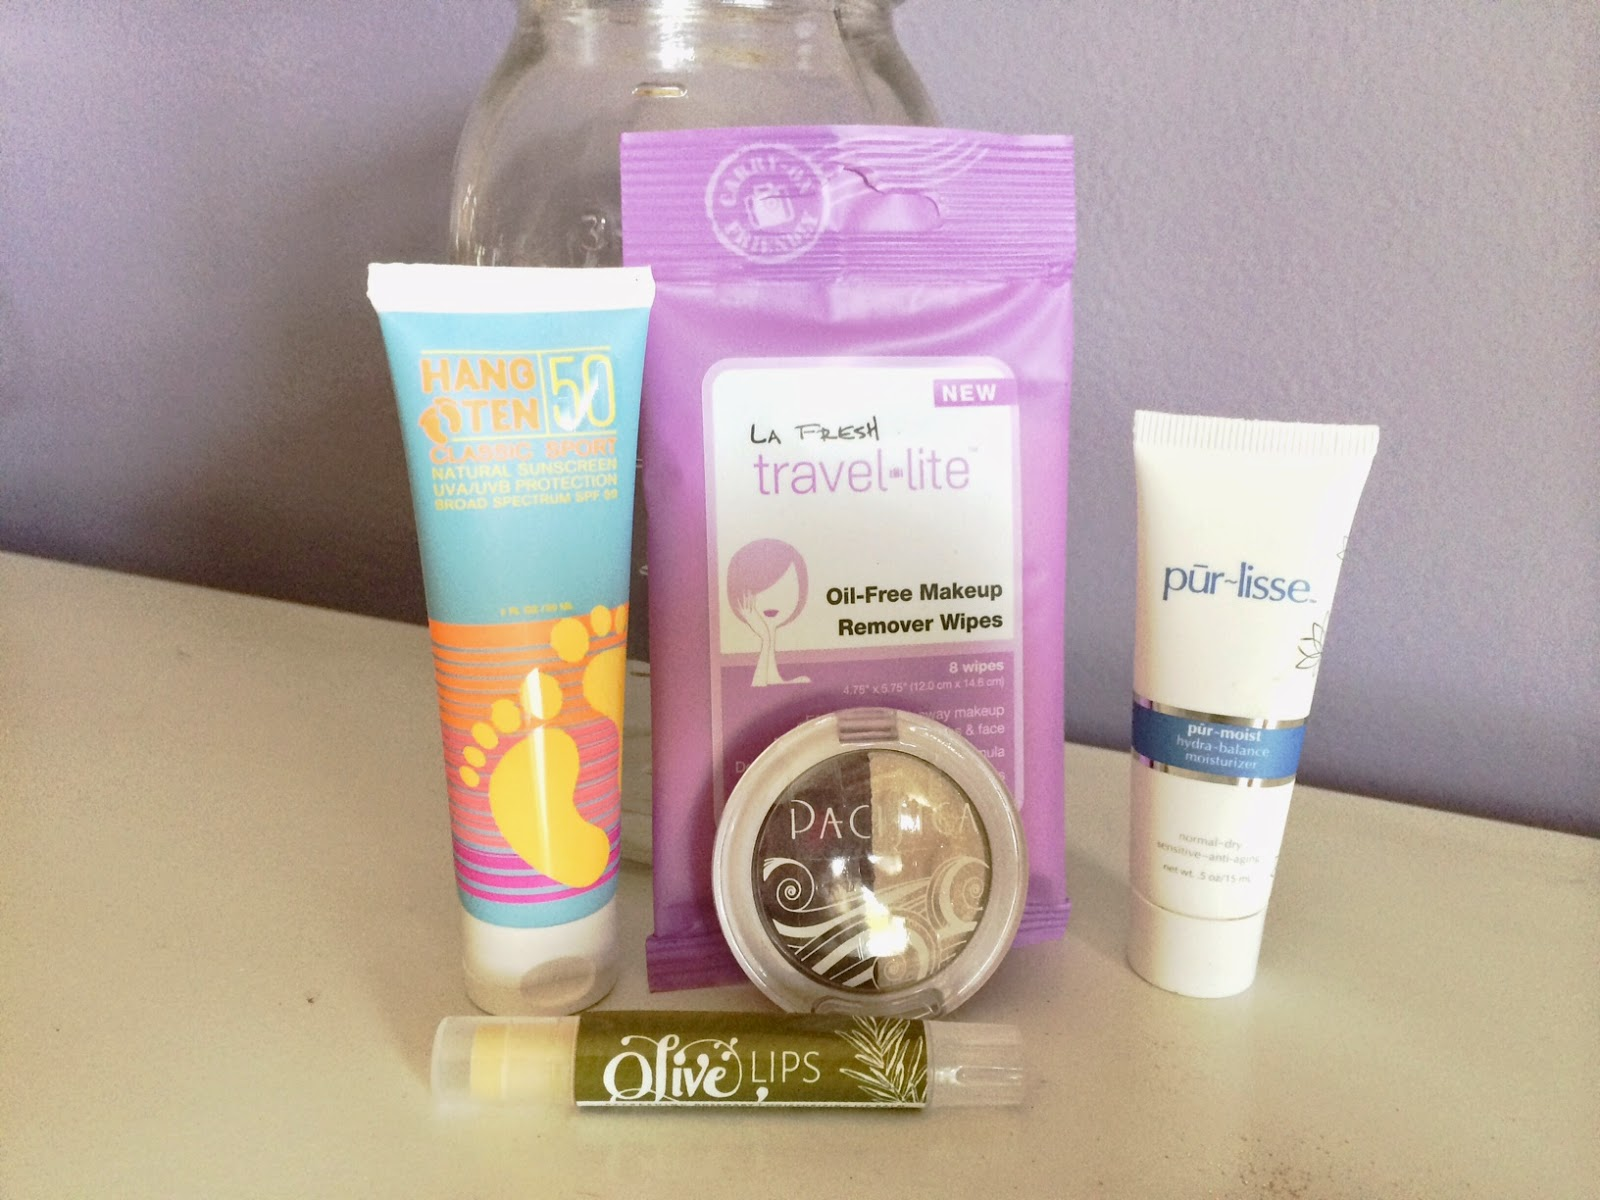 Olive Lips, Hang Ten, Pur-lisse, Pacifica, La Fresh Reviews